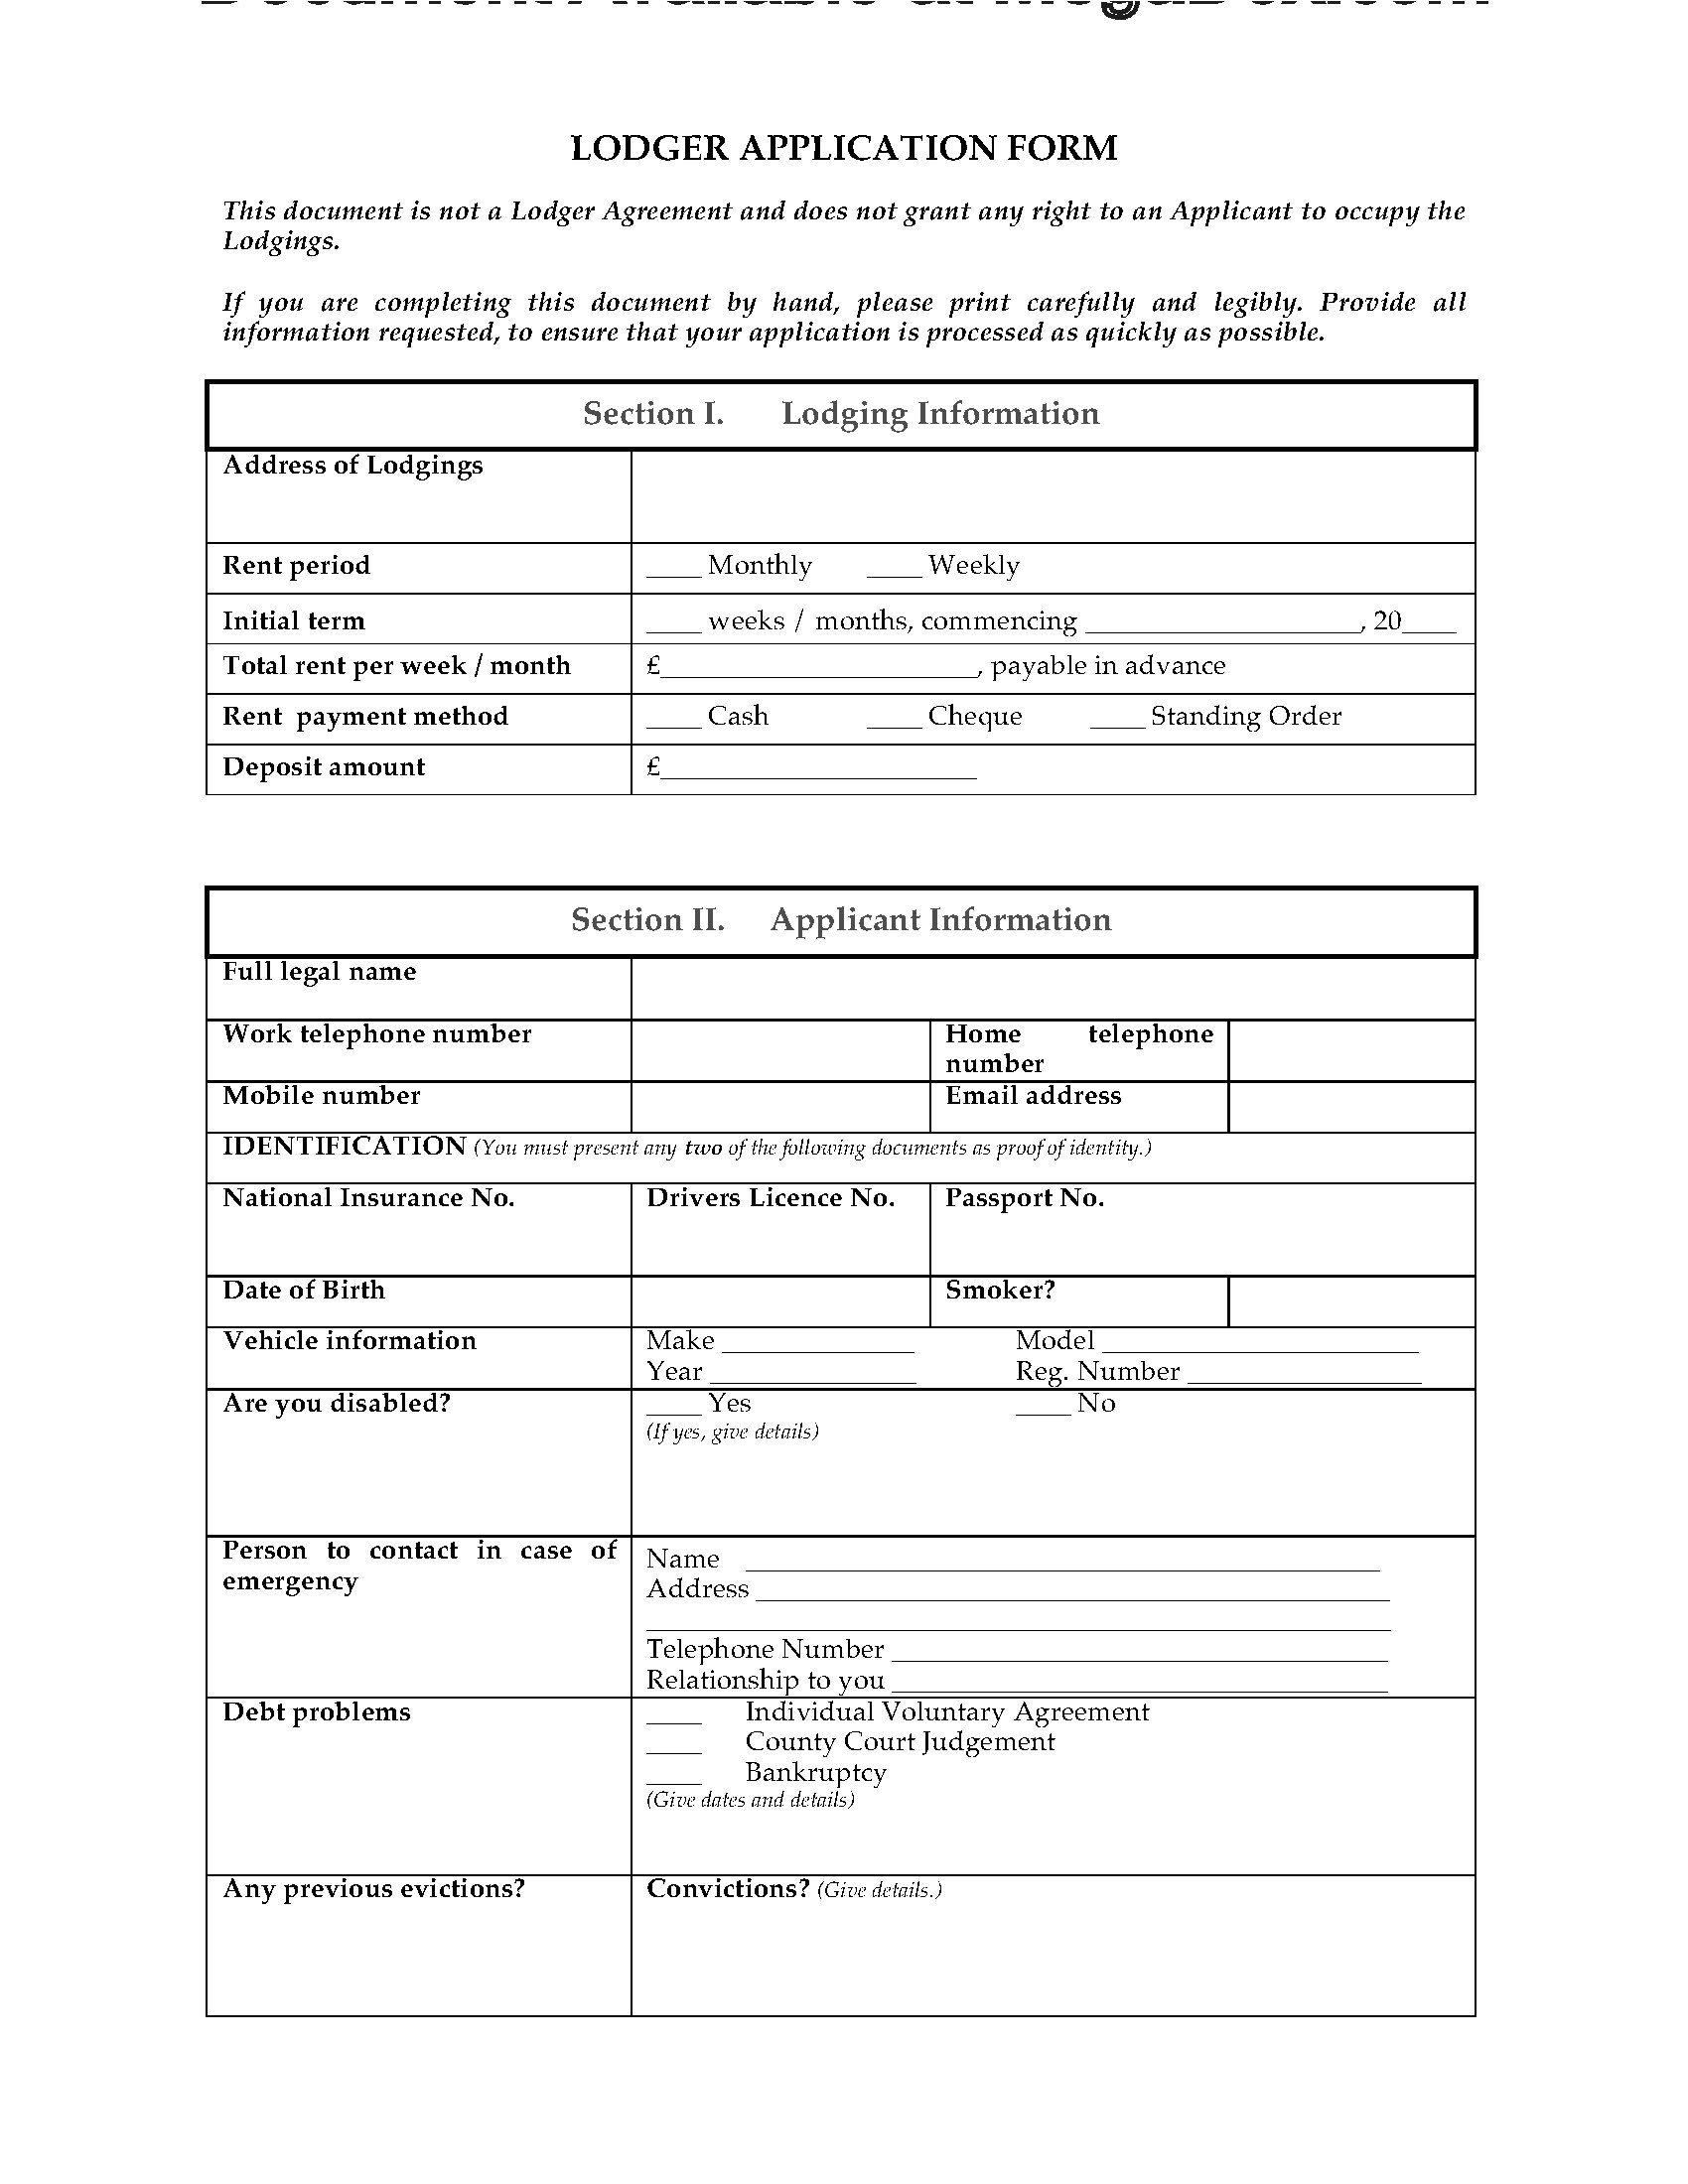 Lodger Contract Template Uk Lodger Application form Legal forms and Business